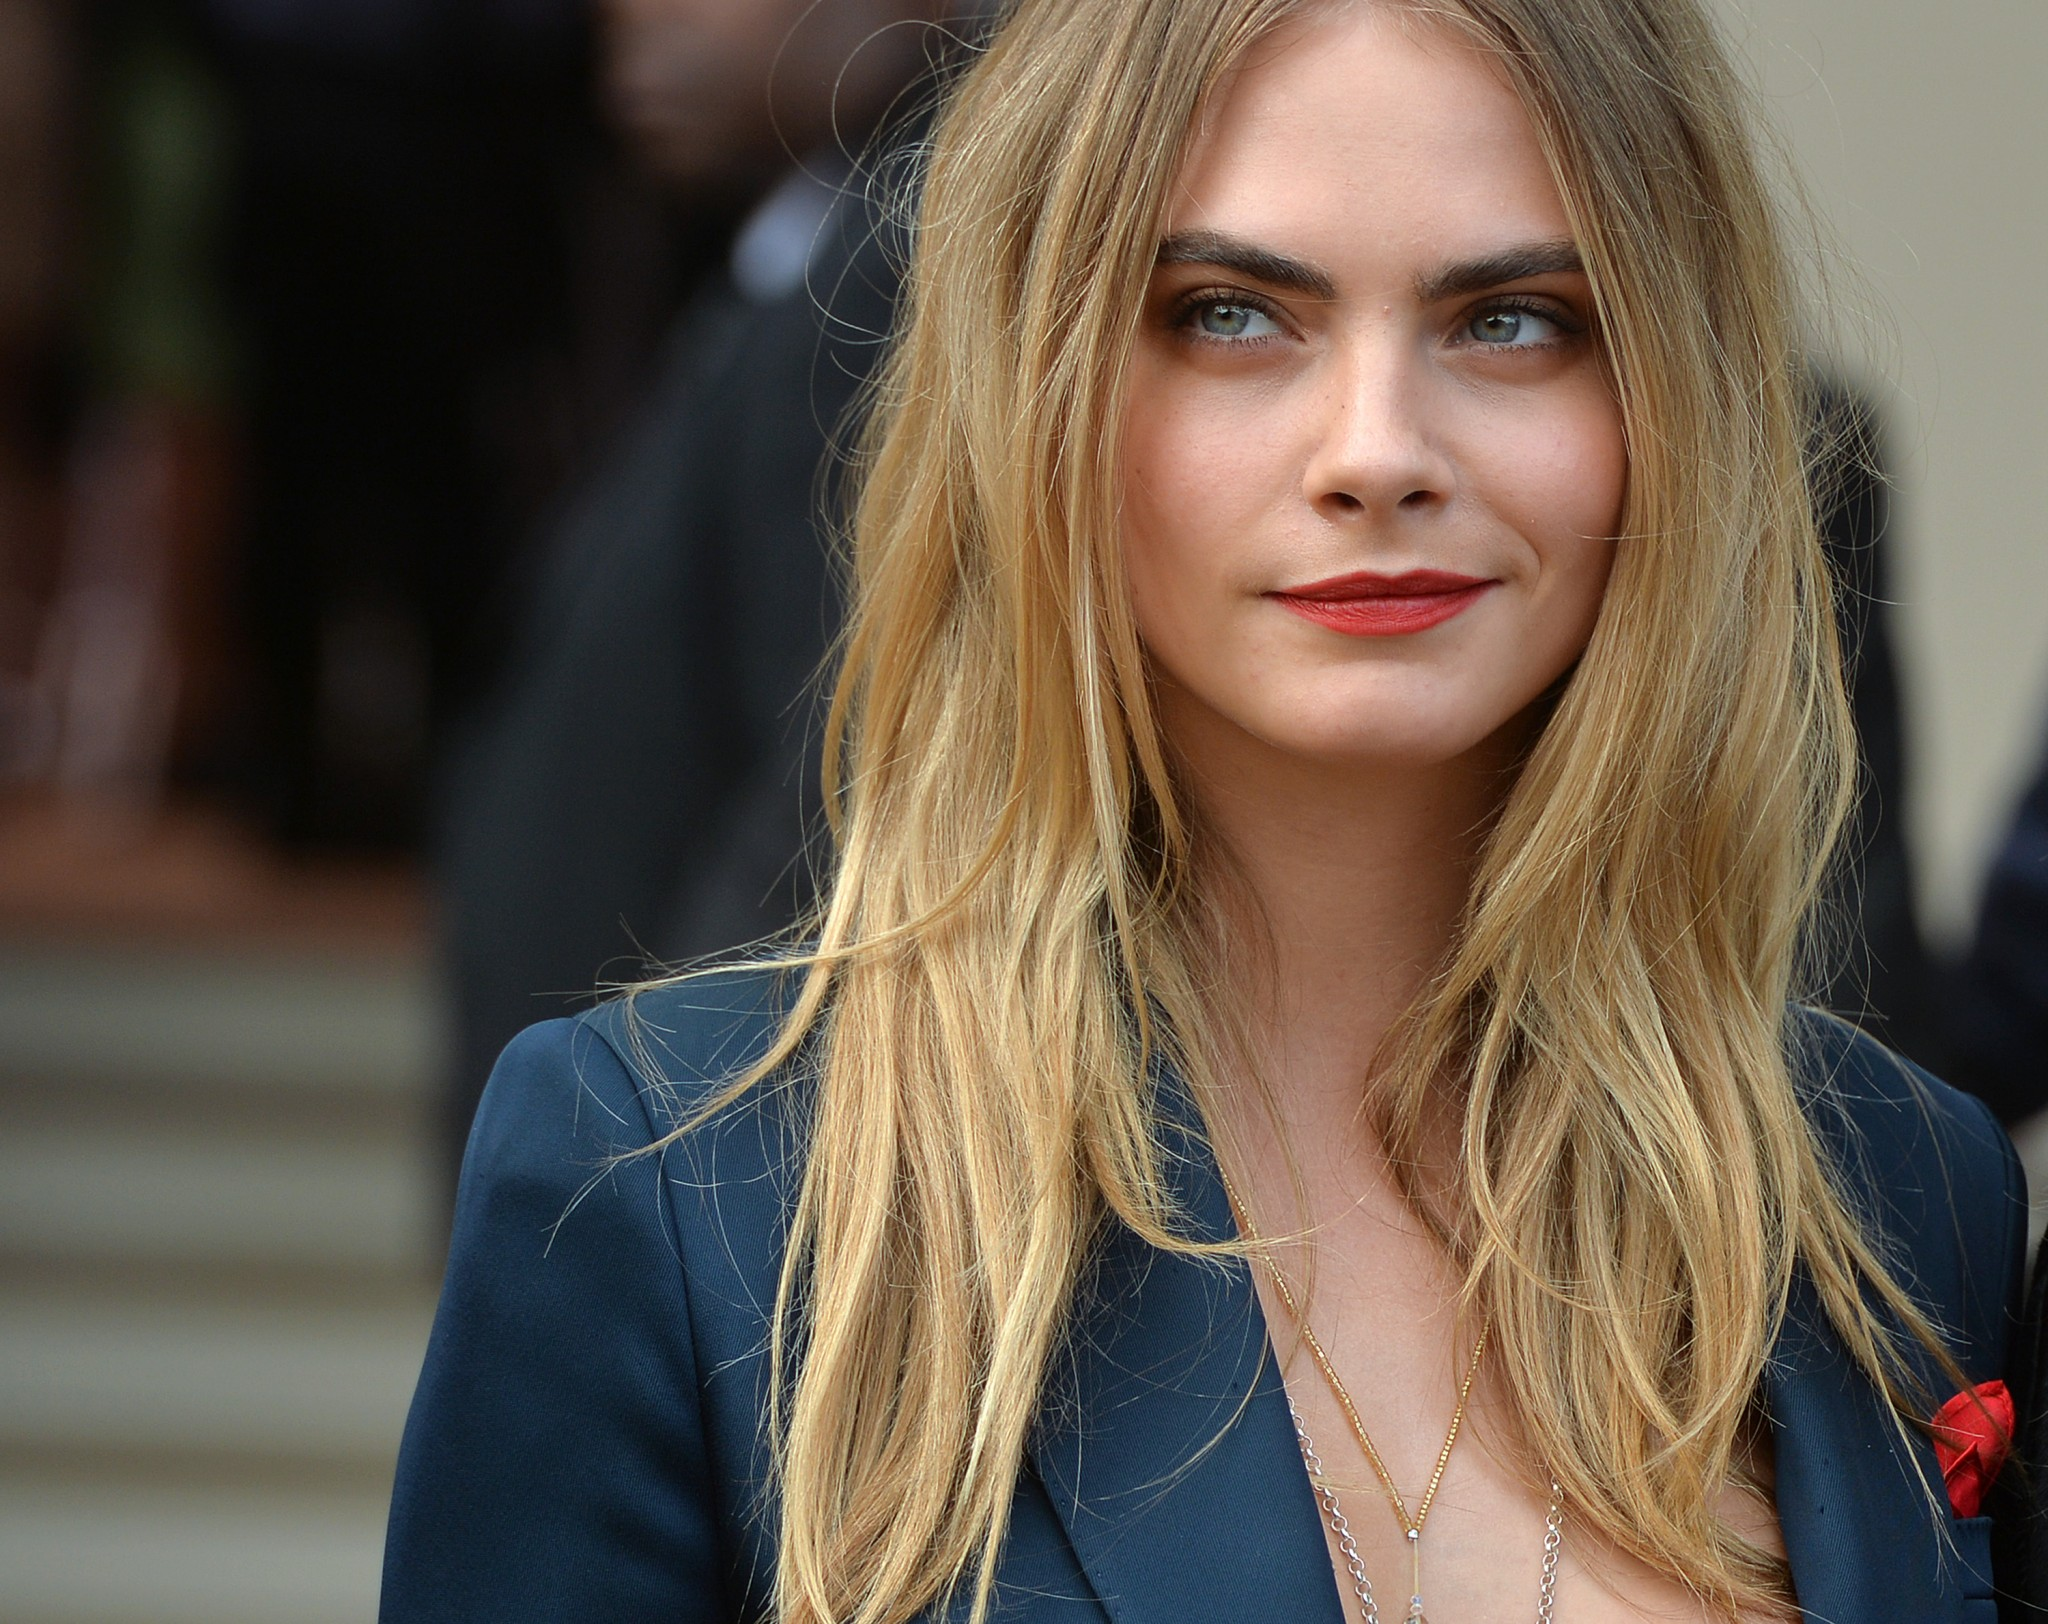 Model Cara Delevingne who is one of Loaded's top women for 21st century